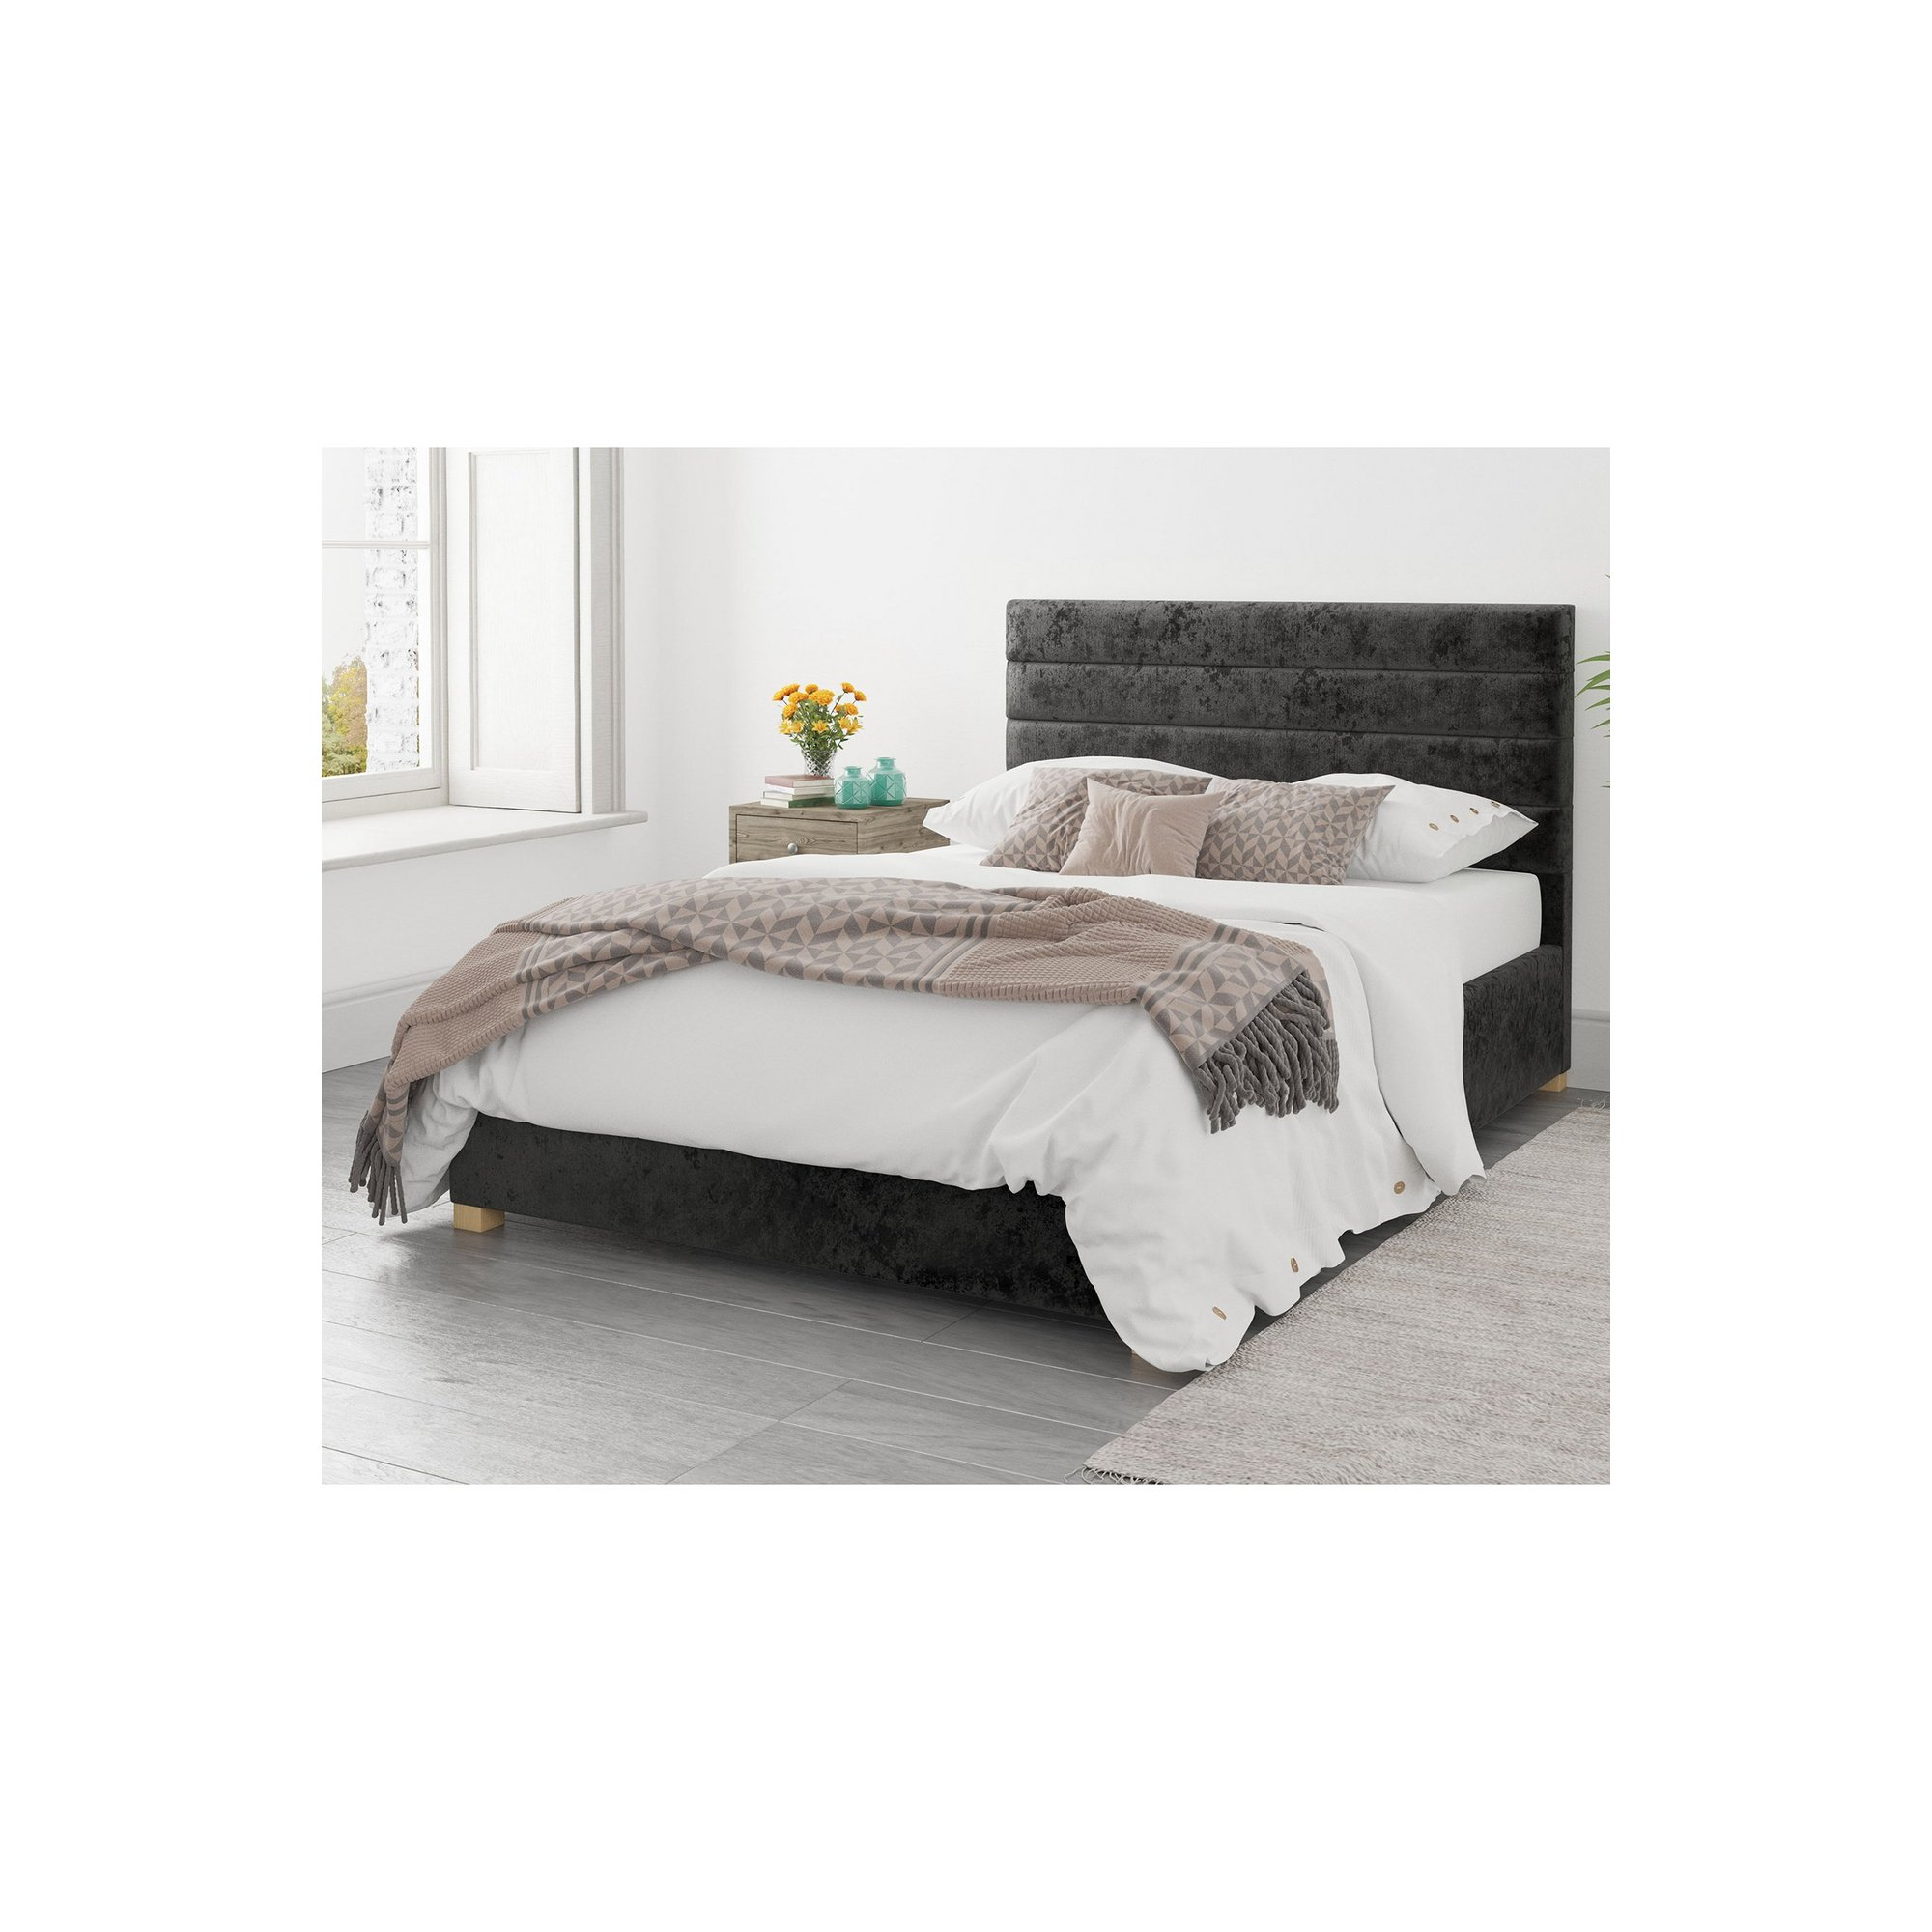 Image of Aspire Kelly Ottoman Bed